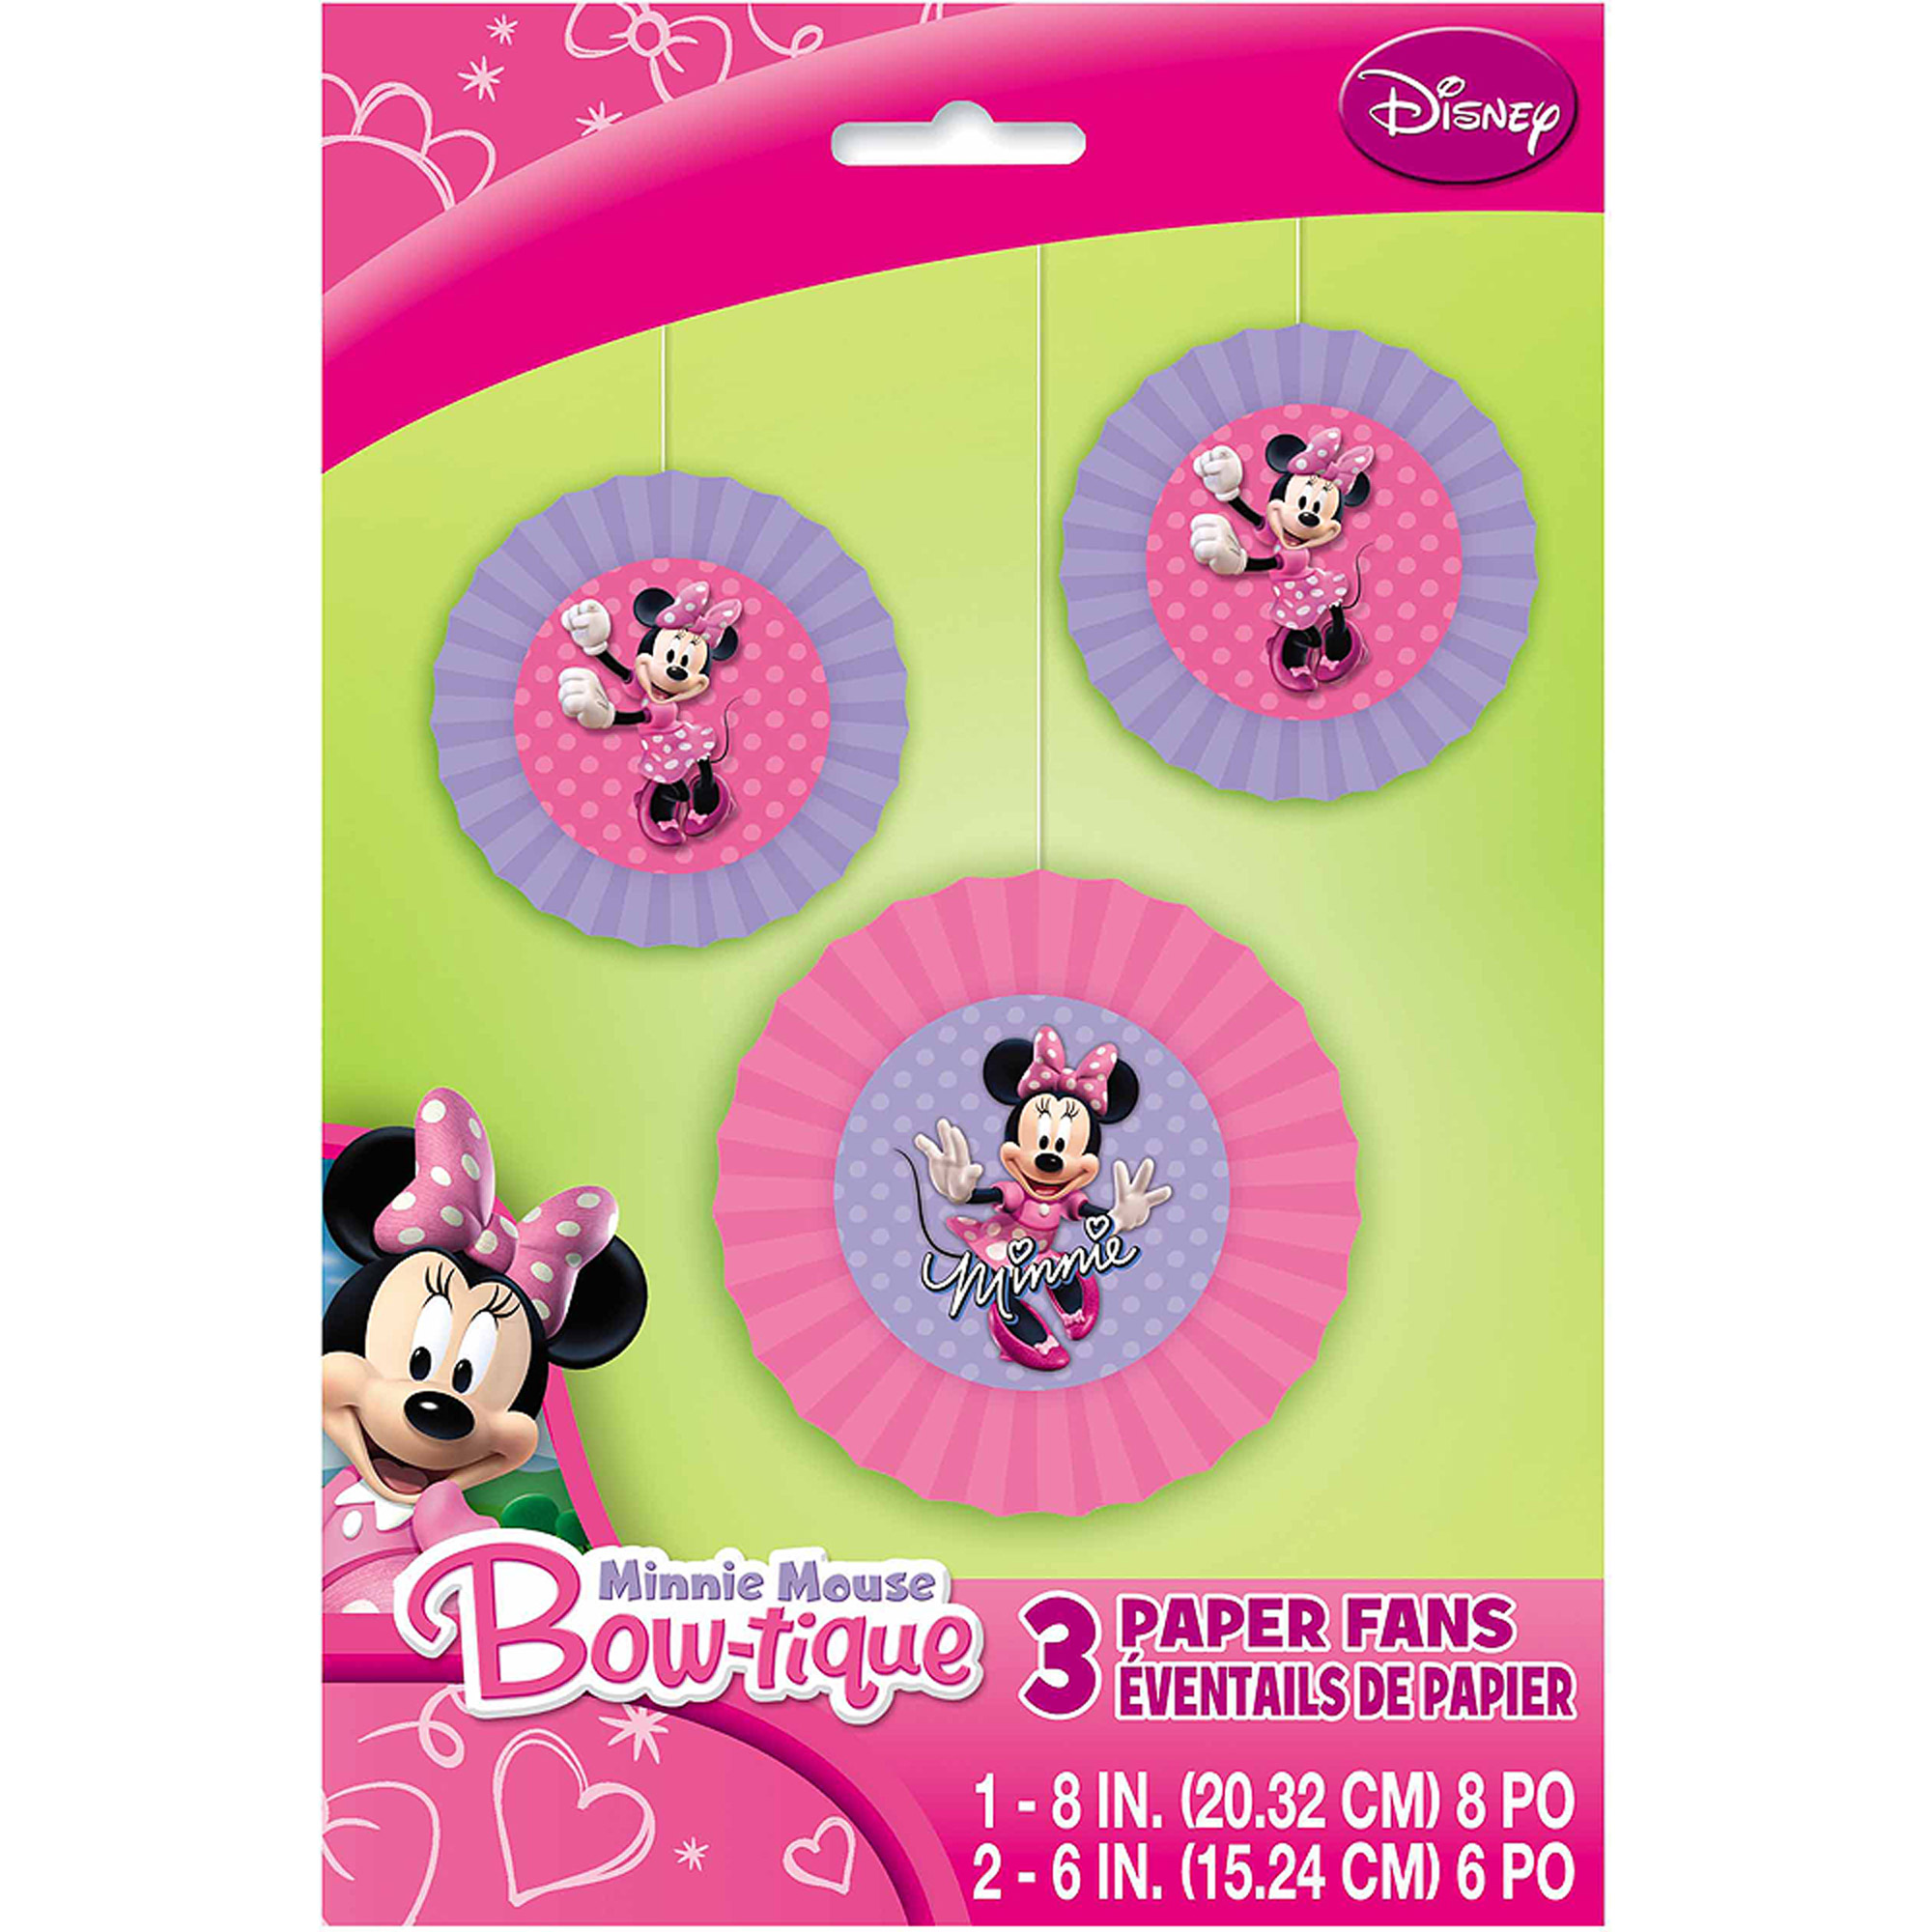 Disney Minnie Mouse Tissue Paper Fan Decorations, 3ct